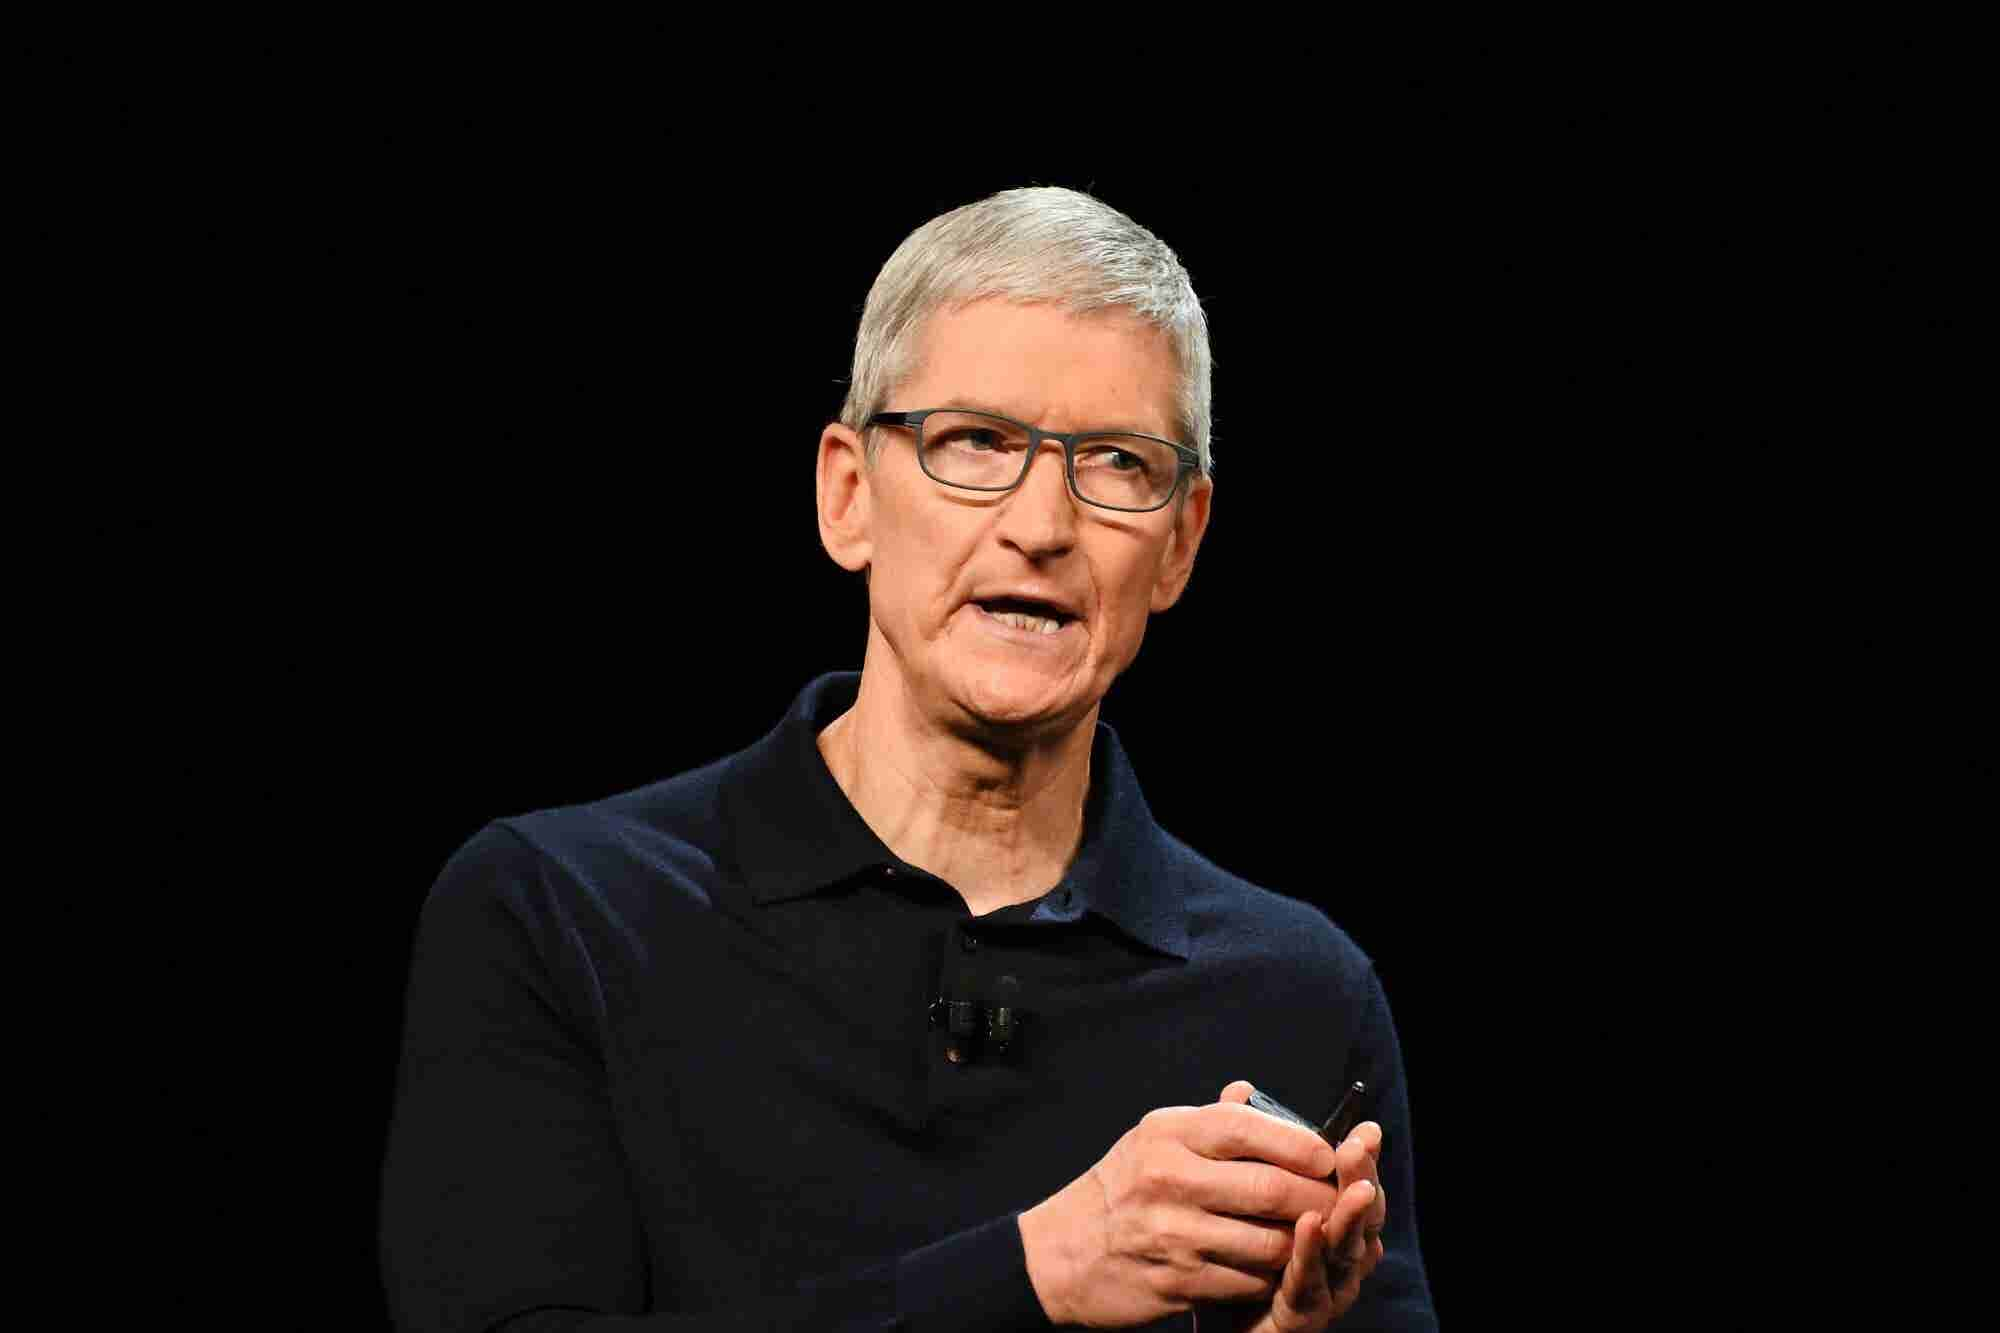 Apple CEO Tim Cook Calls for GDPR-Style Privacy Laws in the U.S.